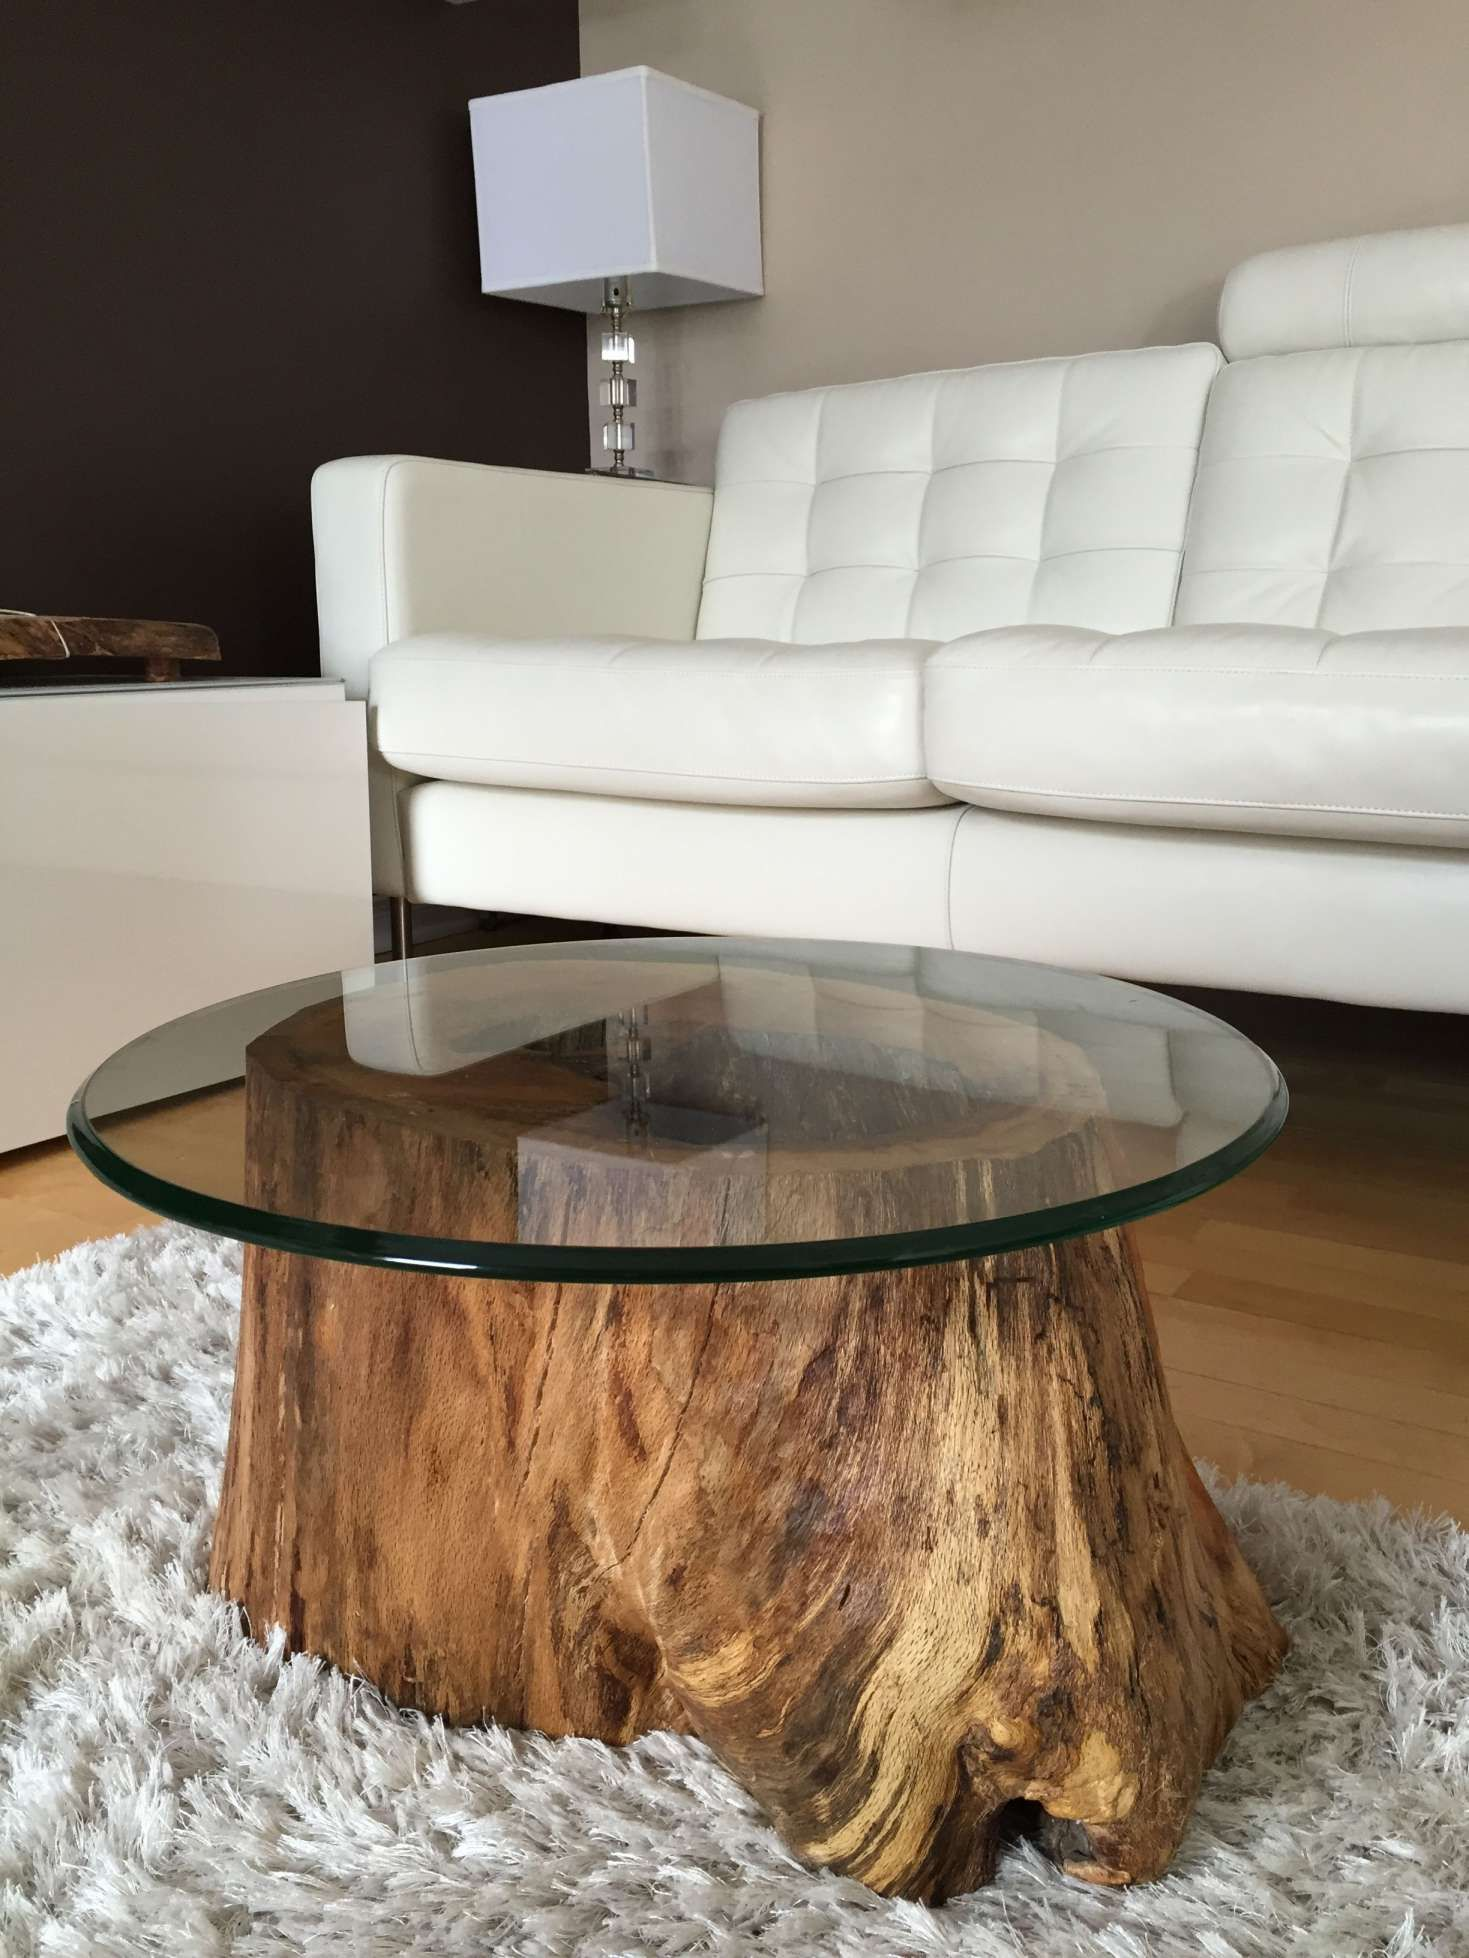 16 Excellent Carved Wood Stump Coffee Table Photos Coffee Table Rustic Furniture Design Diy Home Decor [ 1958 x 1469 Pixel ]